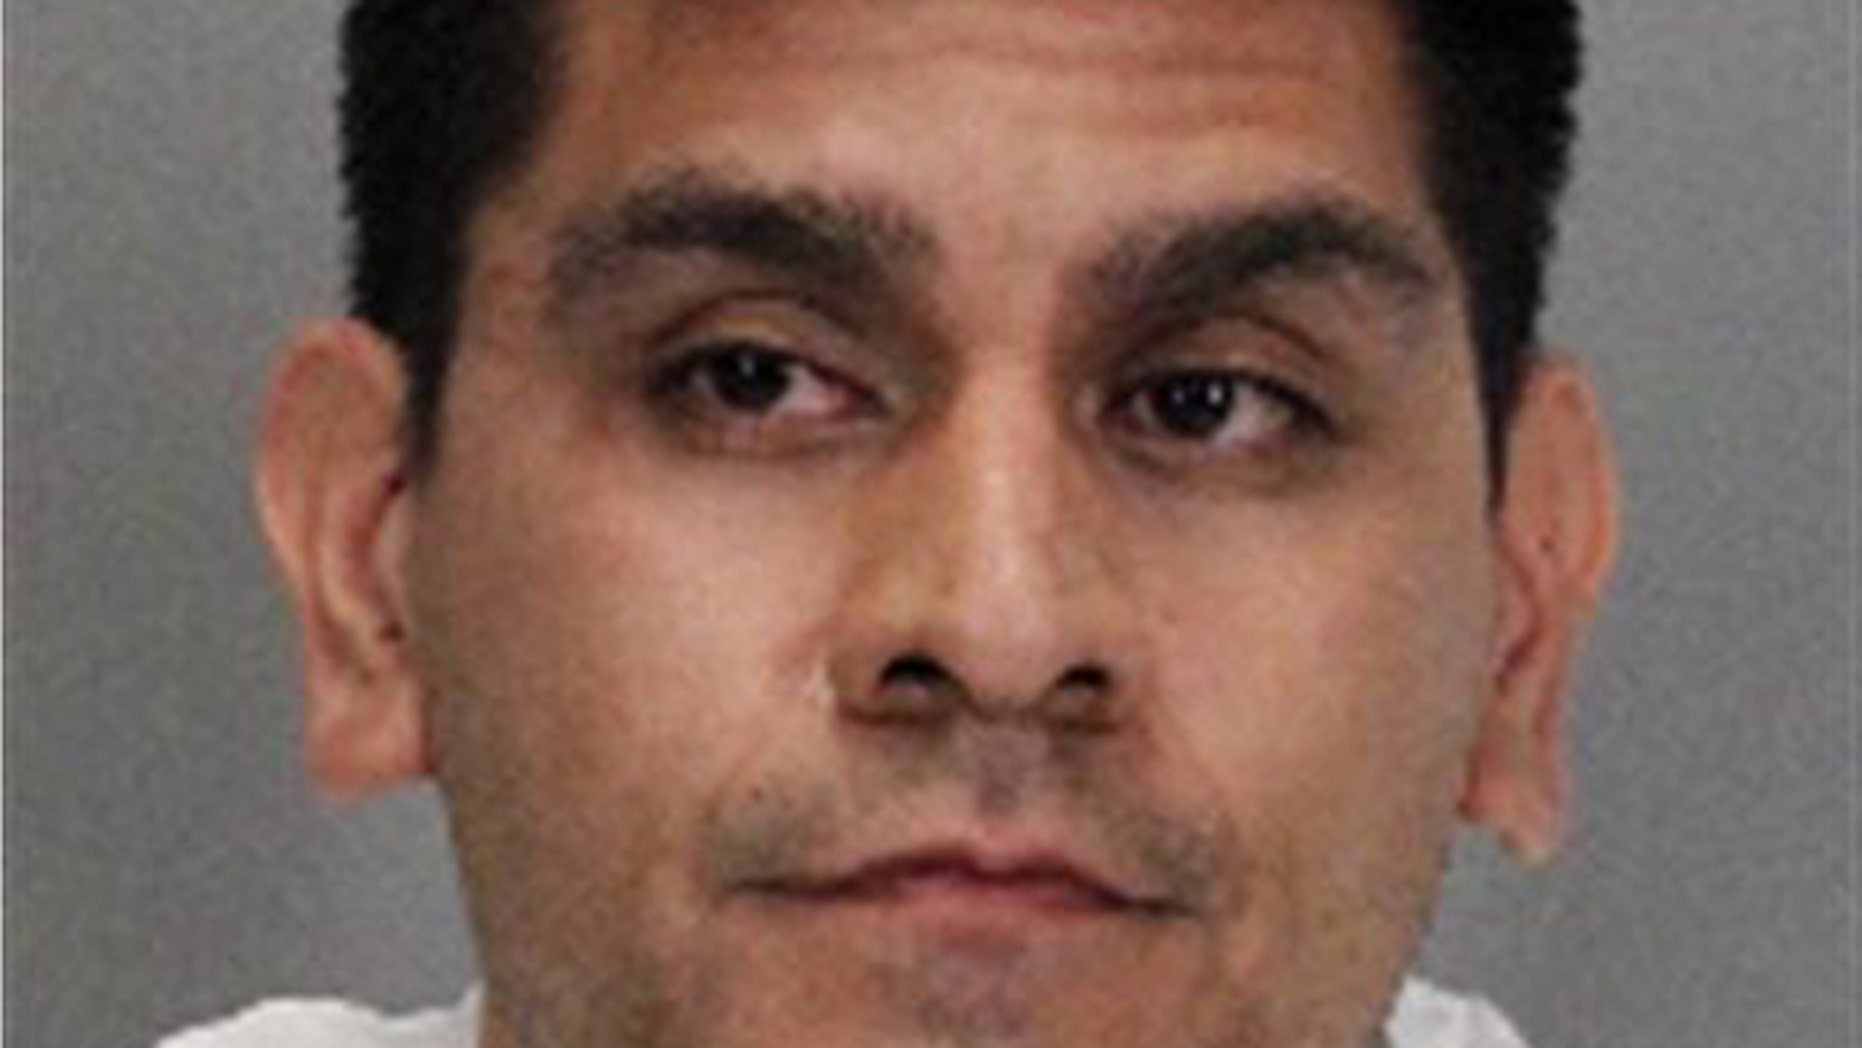 A booking image released July 19, 2015 by the Santa Clara County Sheriff's Department shows Martin Martinez.